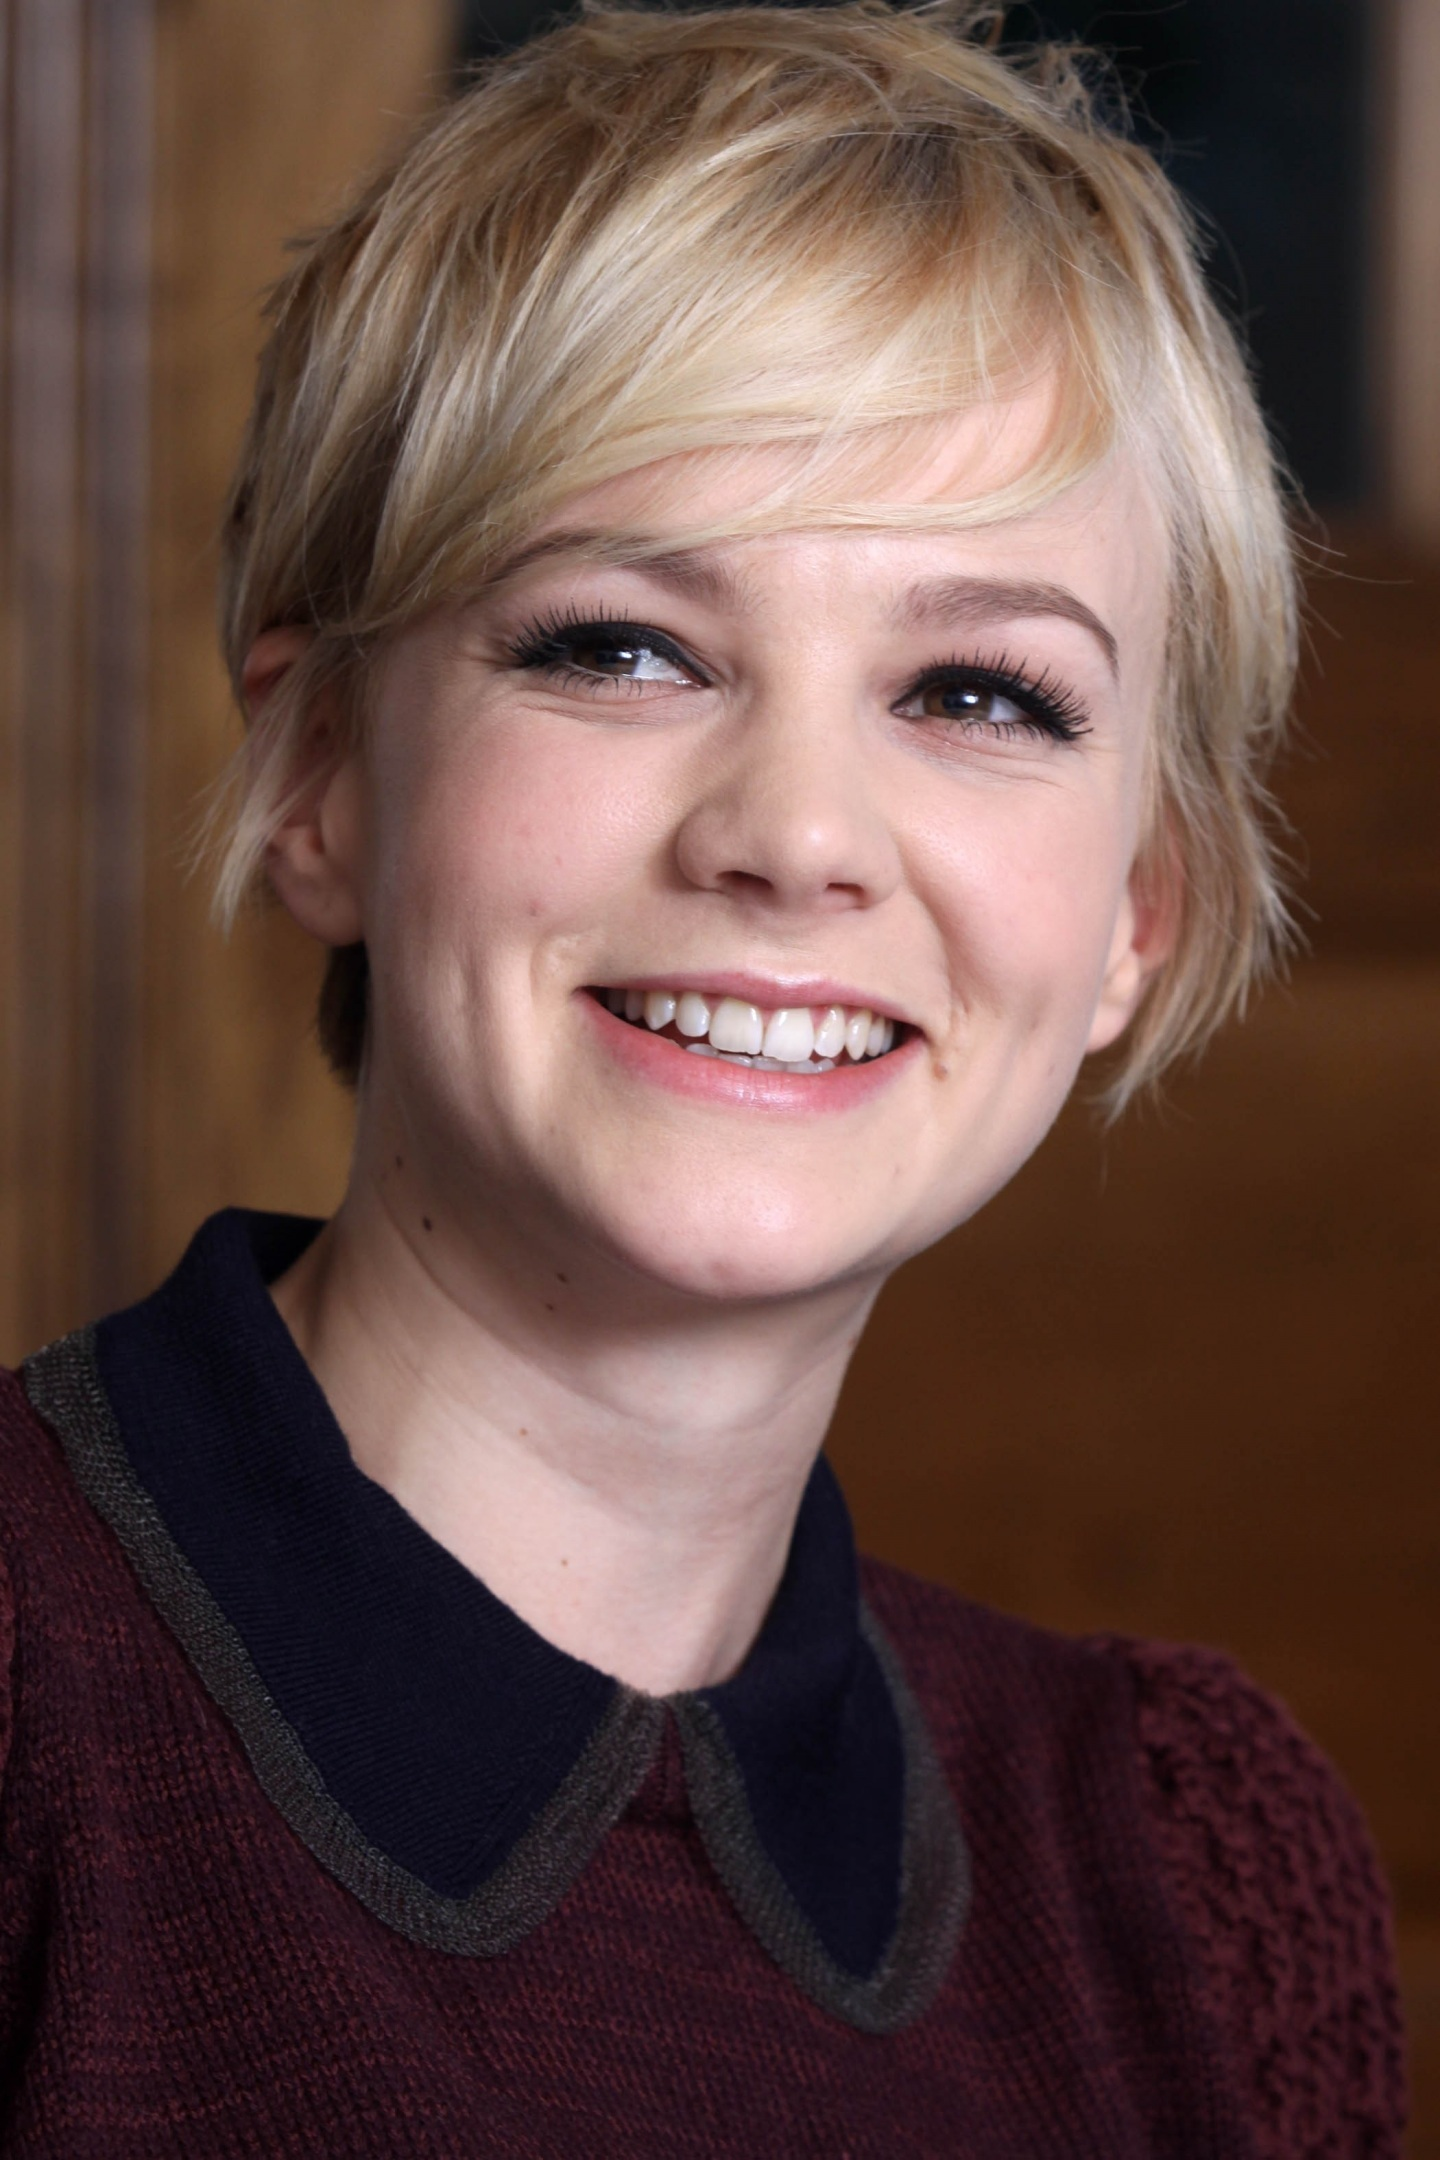 Short Hairstyle Girls Wallpapers Carey Mulligan Wallpapers High Quality Download Free